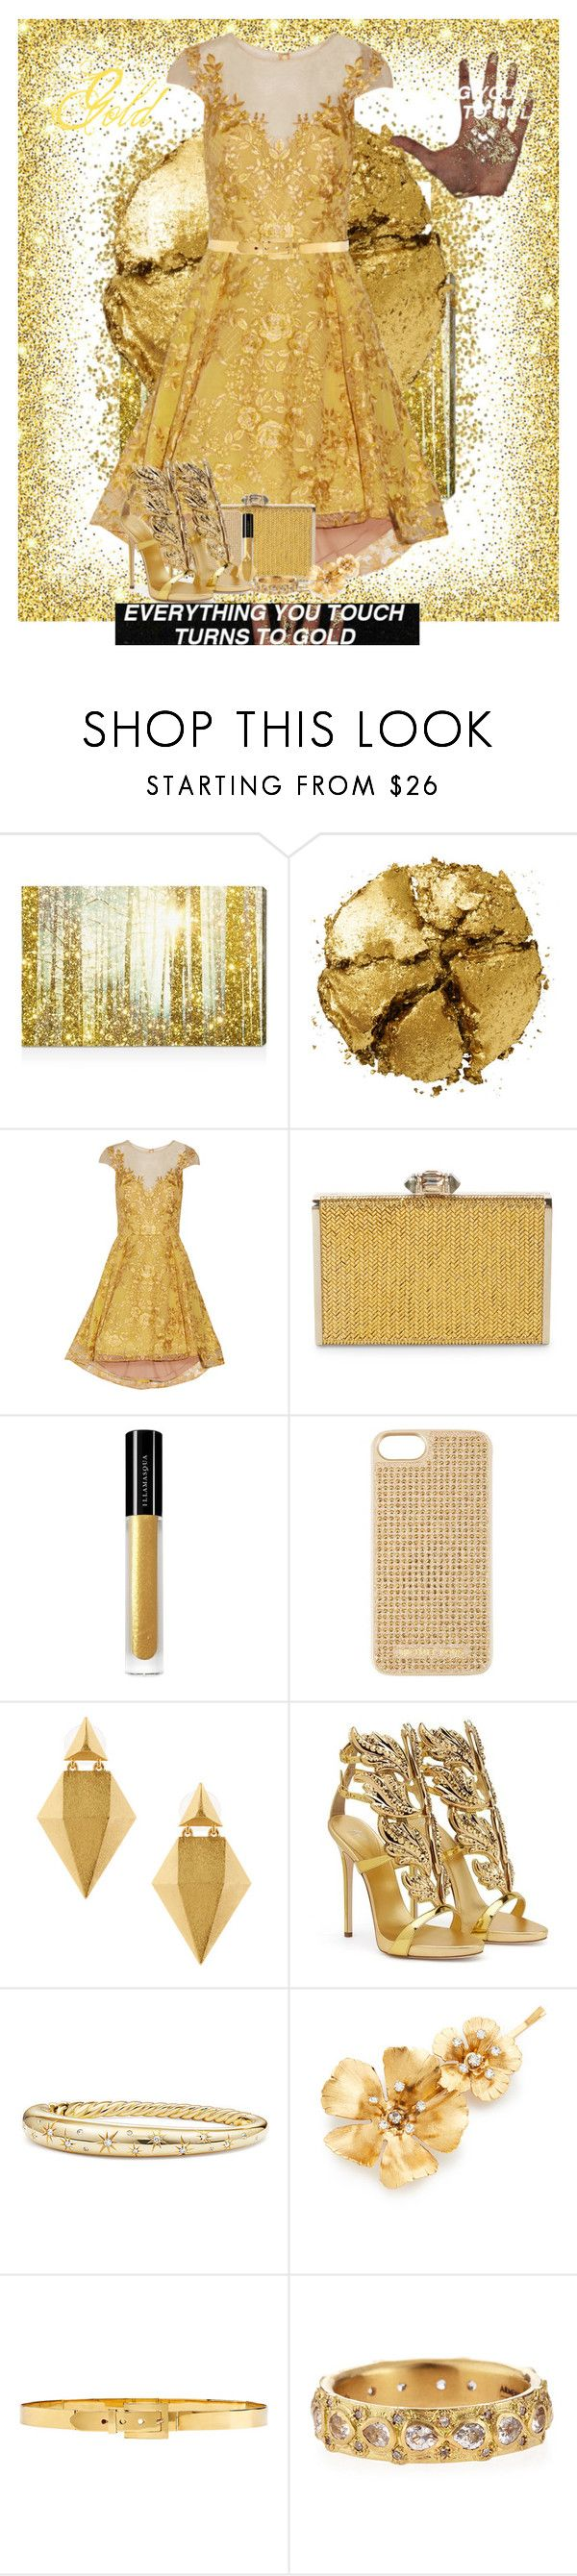 """Everything You Touch Turns To Gold"" by allyssister ❤ liked on Polyvore featuring Oliver Gal Artist Co., Pat McGrath, Notte by Marchesa, Judith Leiber, Illamasqua, MICHAEL Michael Kors, Stephanie Kantis, Giuseppe Zanotti, David Yurman and Jennifer Behr"